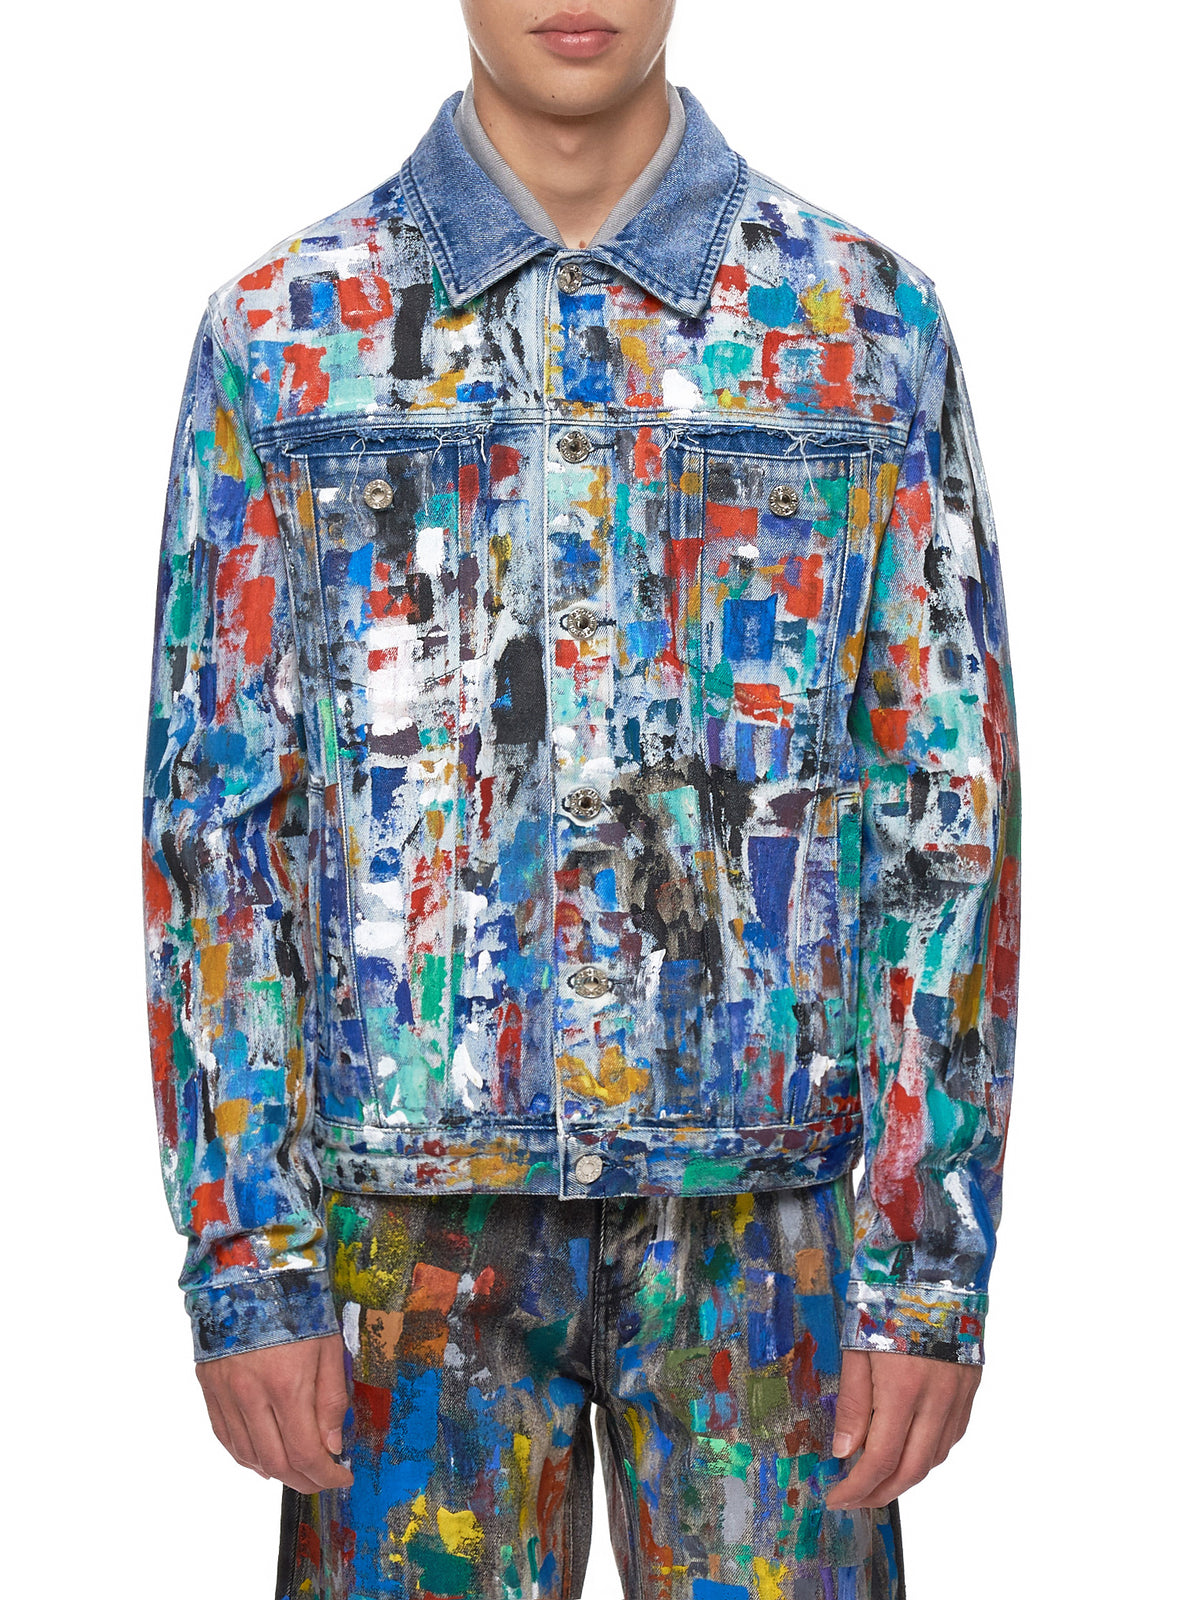 Paint-Splattered Jacket (GEO-CUSTOM-DENIM-STONEWASH)